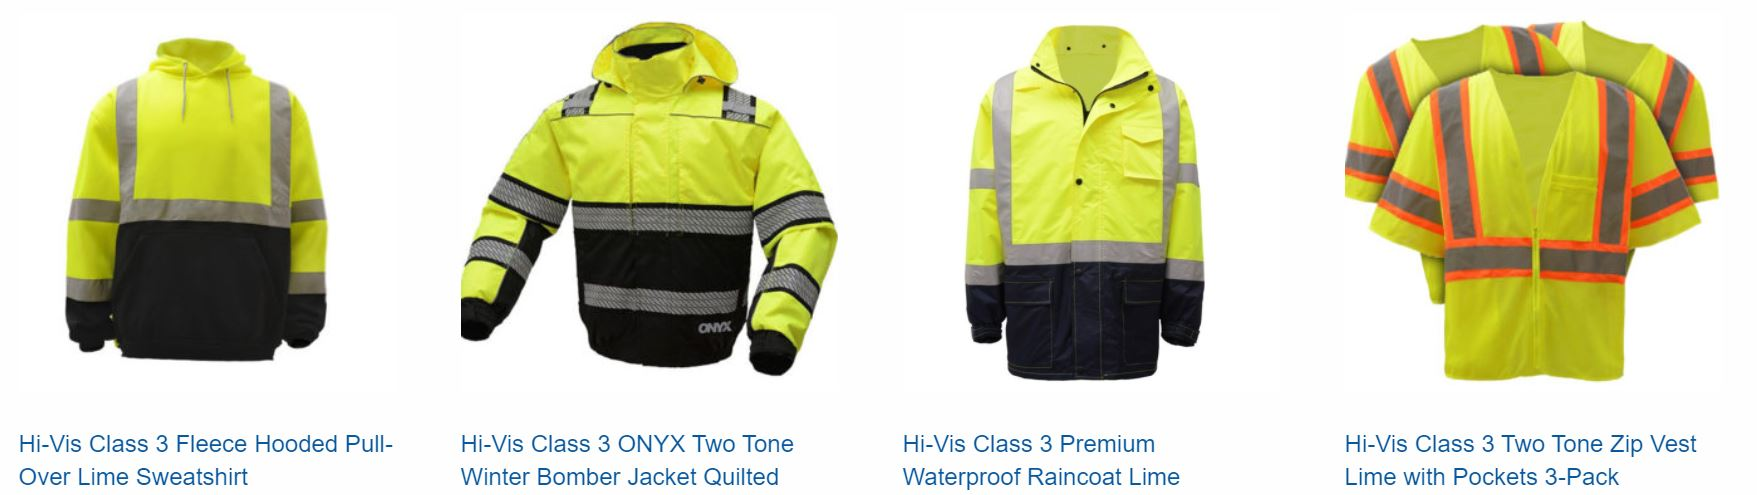 Choices, choices, choices at BPI Color's Hi-Vis stores.